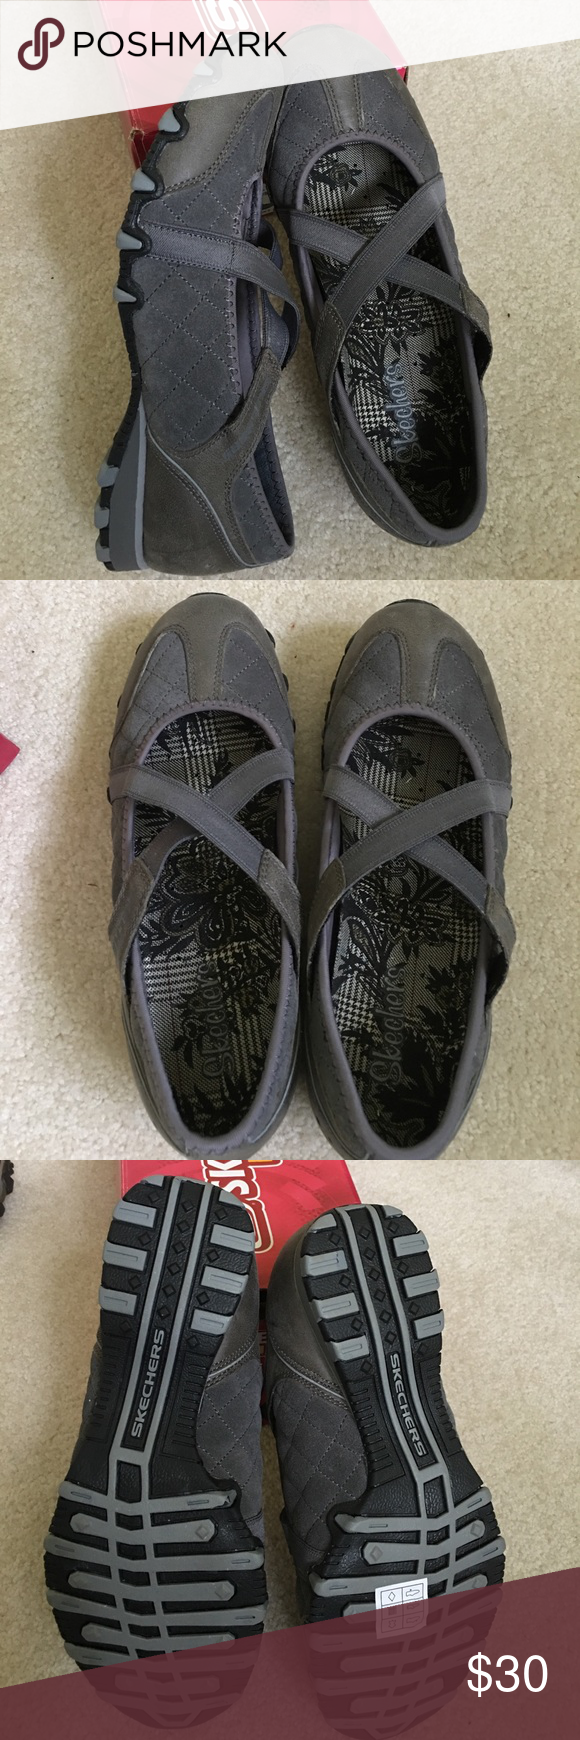 Skechers Bikers Applause Charcoal NIB sz 7.5 Brand new pair of Skechers Active Applause Mary Jane style flats. These are a charcoal gray color with elastic crisscross straps. The fabric is a quilted suede. NIB Skechers Shoes Flats & Loafers